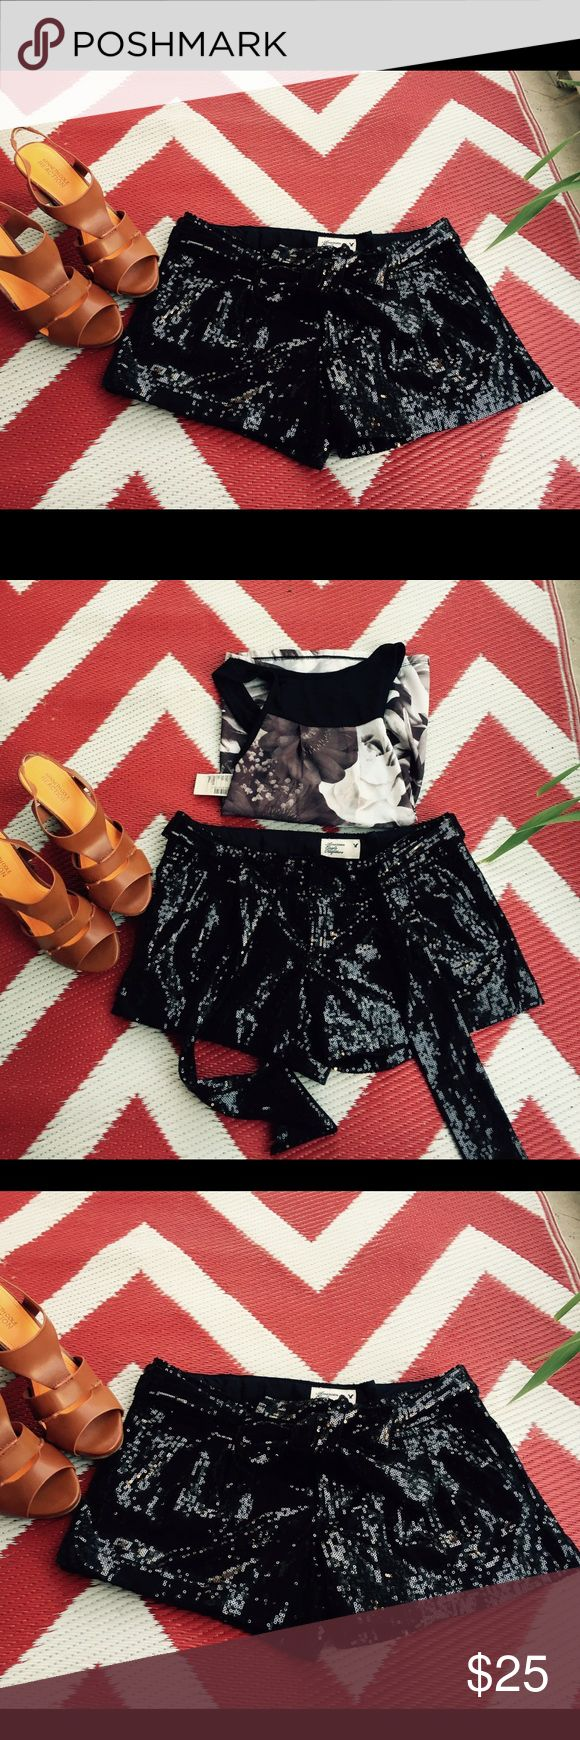 """American Eagle Black Sequined Shorts Gorgeous shiny black sequins shorts by American Eagle Outfitters. Fully lined with tie belt. Stretch. Size 0. Like new condition. Cute for date night with girl friends and pair it with heels or booties. Inseam: 3.5"""" American Eagle Outfitters Shorts"""